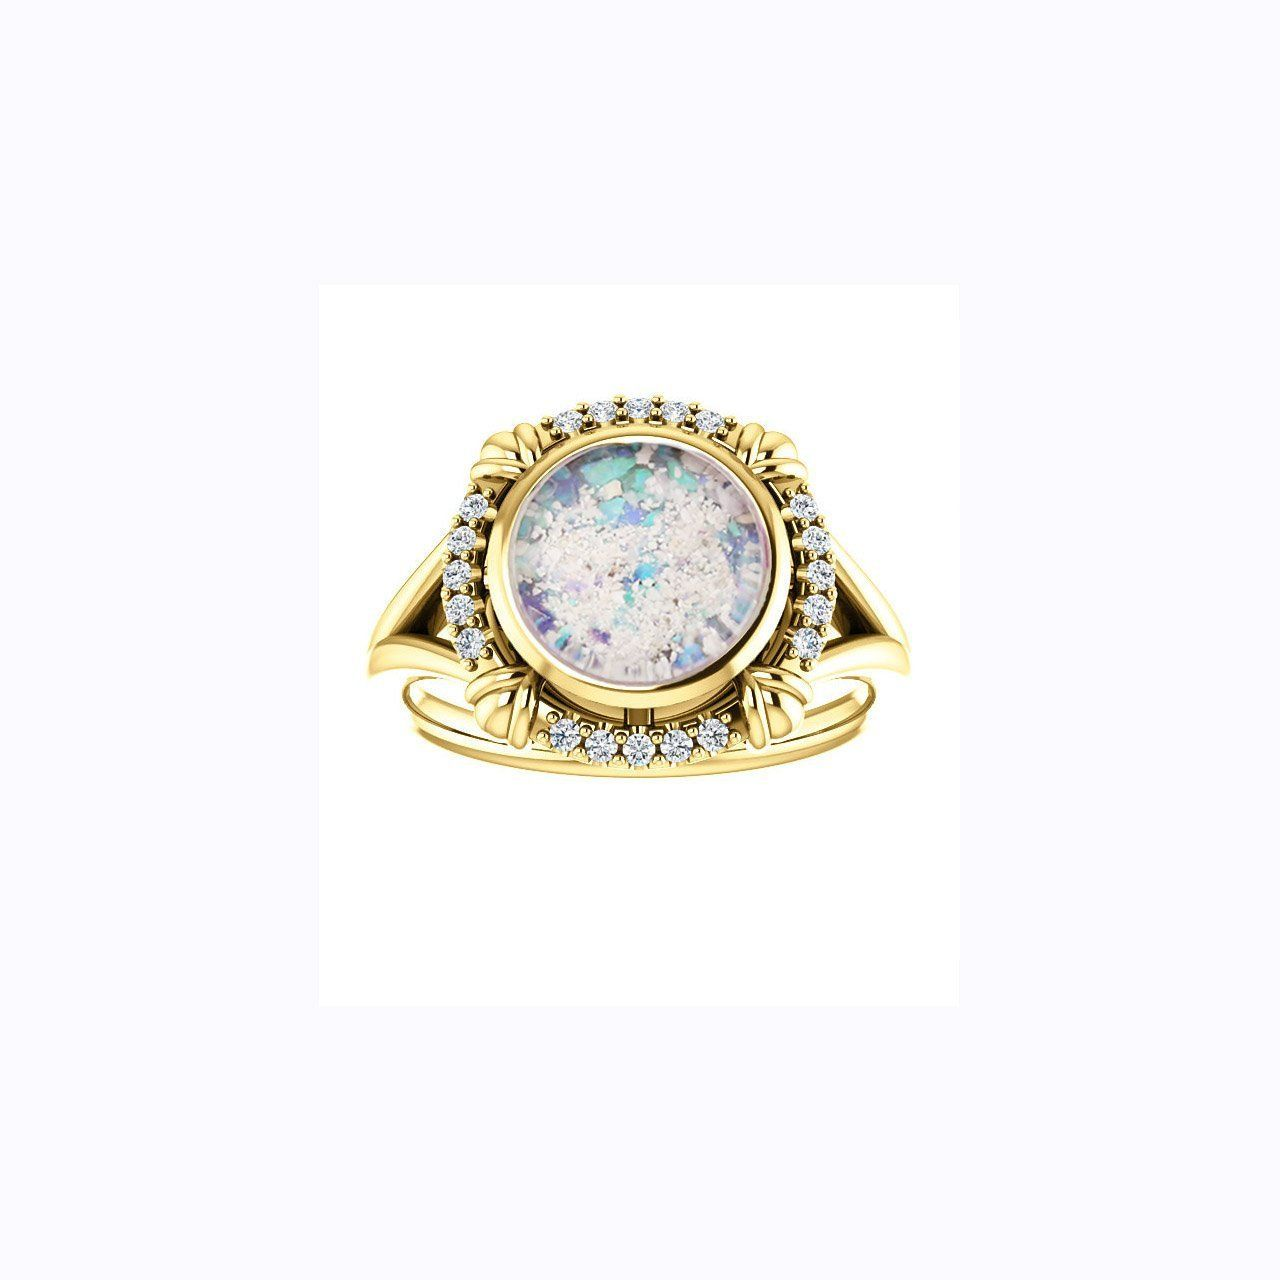 8mm Round Glass Cremation Ring 10k Yellow Gold And Diamond Ring Cremation Jewelry Ash Ring Ash Jewelry Ashes Jewelry Memorial Jewelry Ashes Urn Jewelry